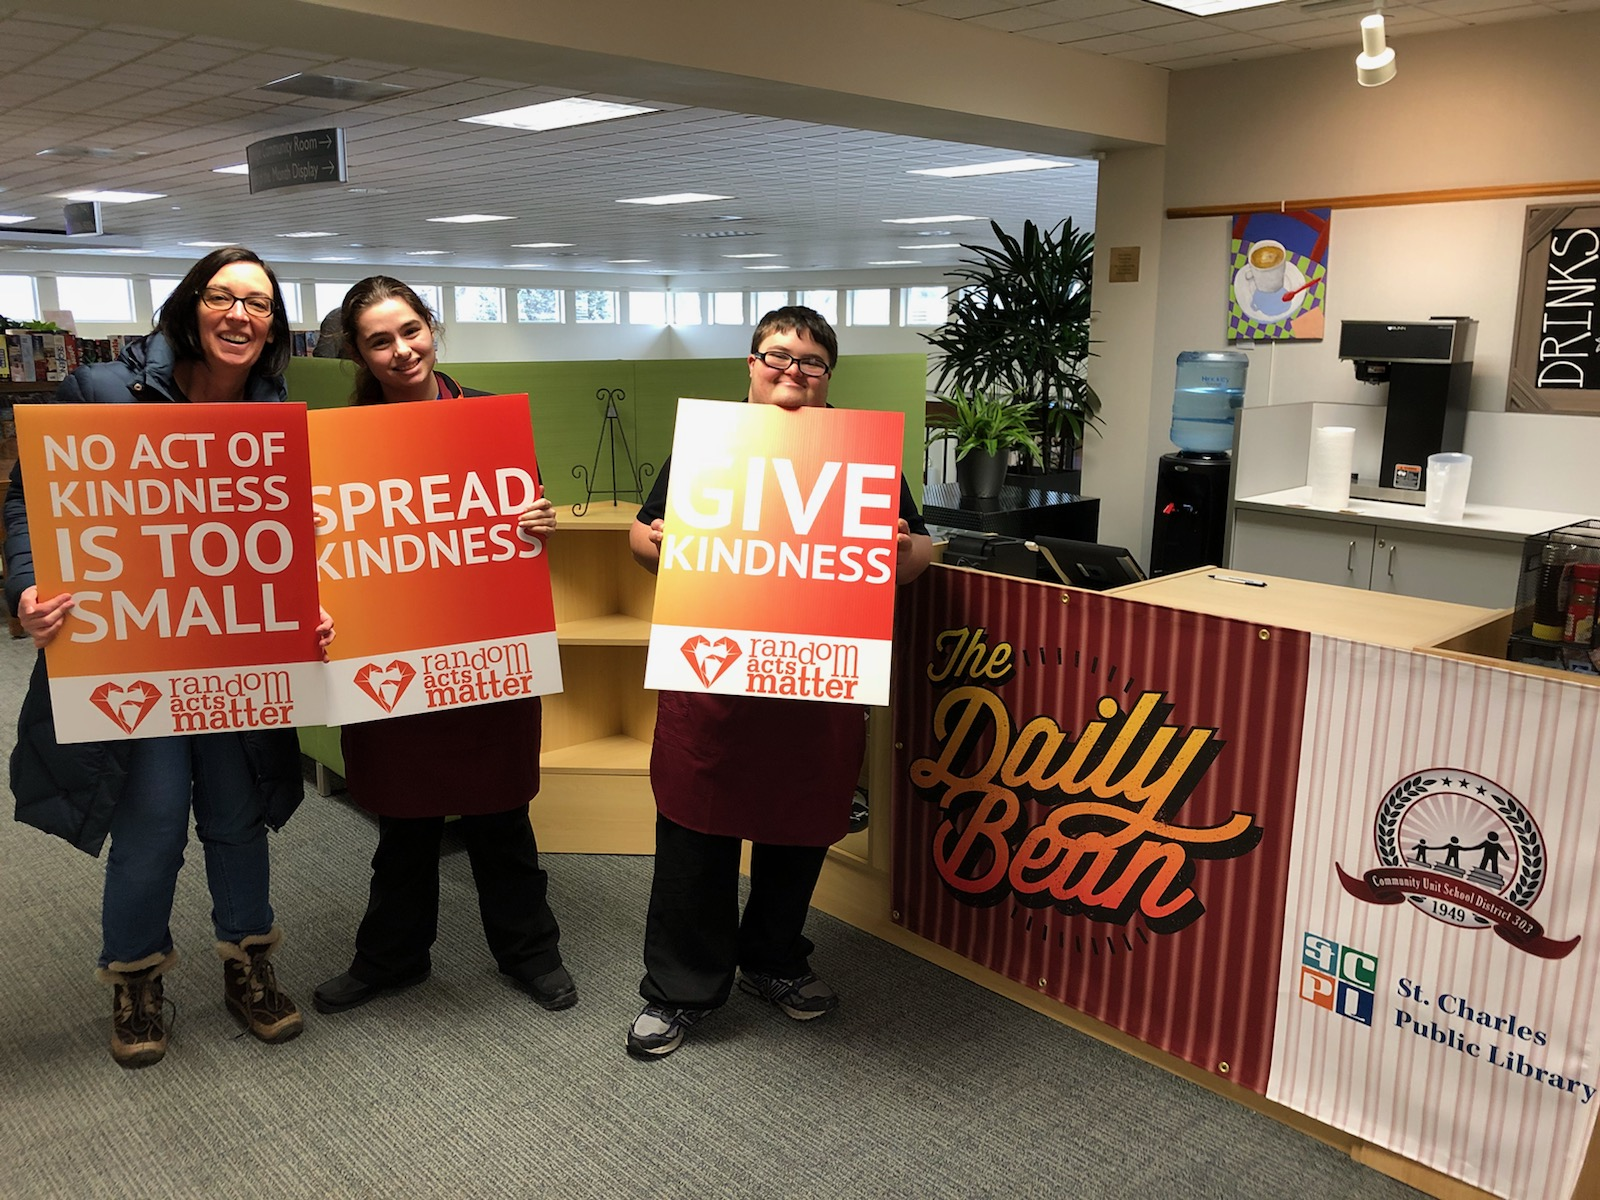 Thanks to Jon and Jordynn, 2 awesome D303 Transition OJT students working at The Daily Bean!!   They are helping us kick off Random Acts of Kindness Week today! Stop by the STC Library some morning when school is open for a cup of coffee and great service by these terrific students!